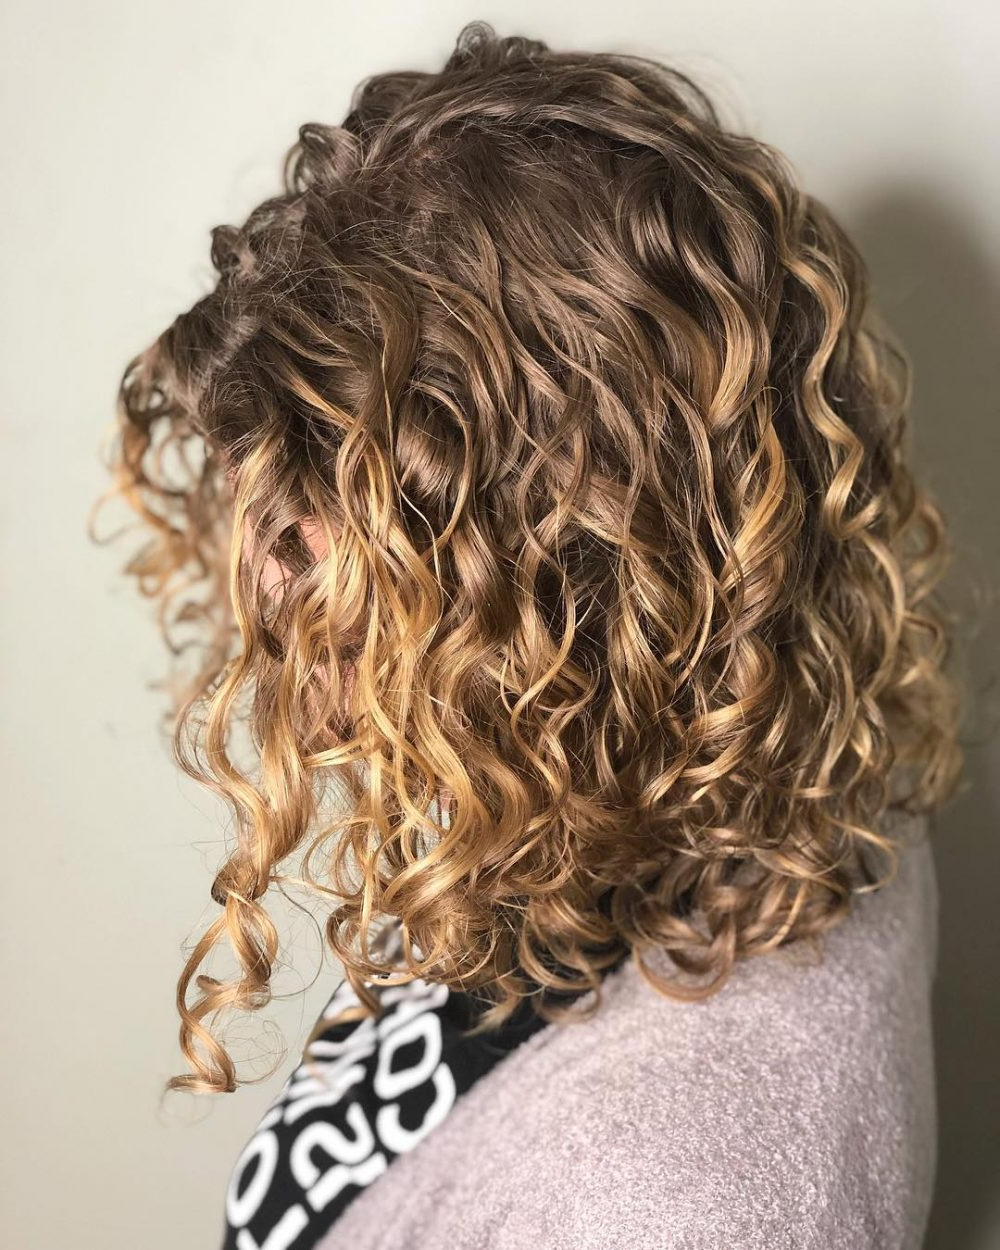 30 Gorgeous Medium Length Curly Hairstyles For Women In 2019 In Current Naturally Curly Medium Haircuts (Gallery 12 of 20)